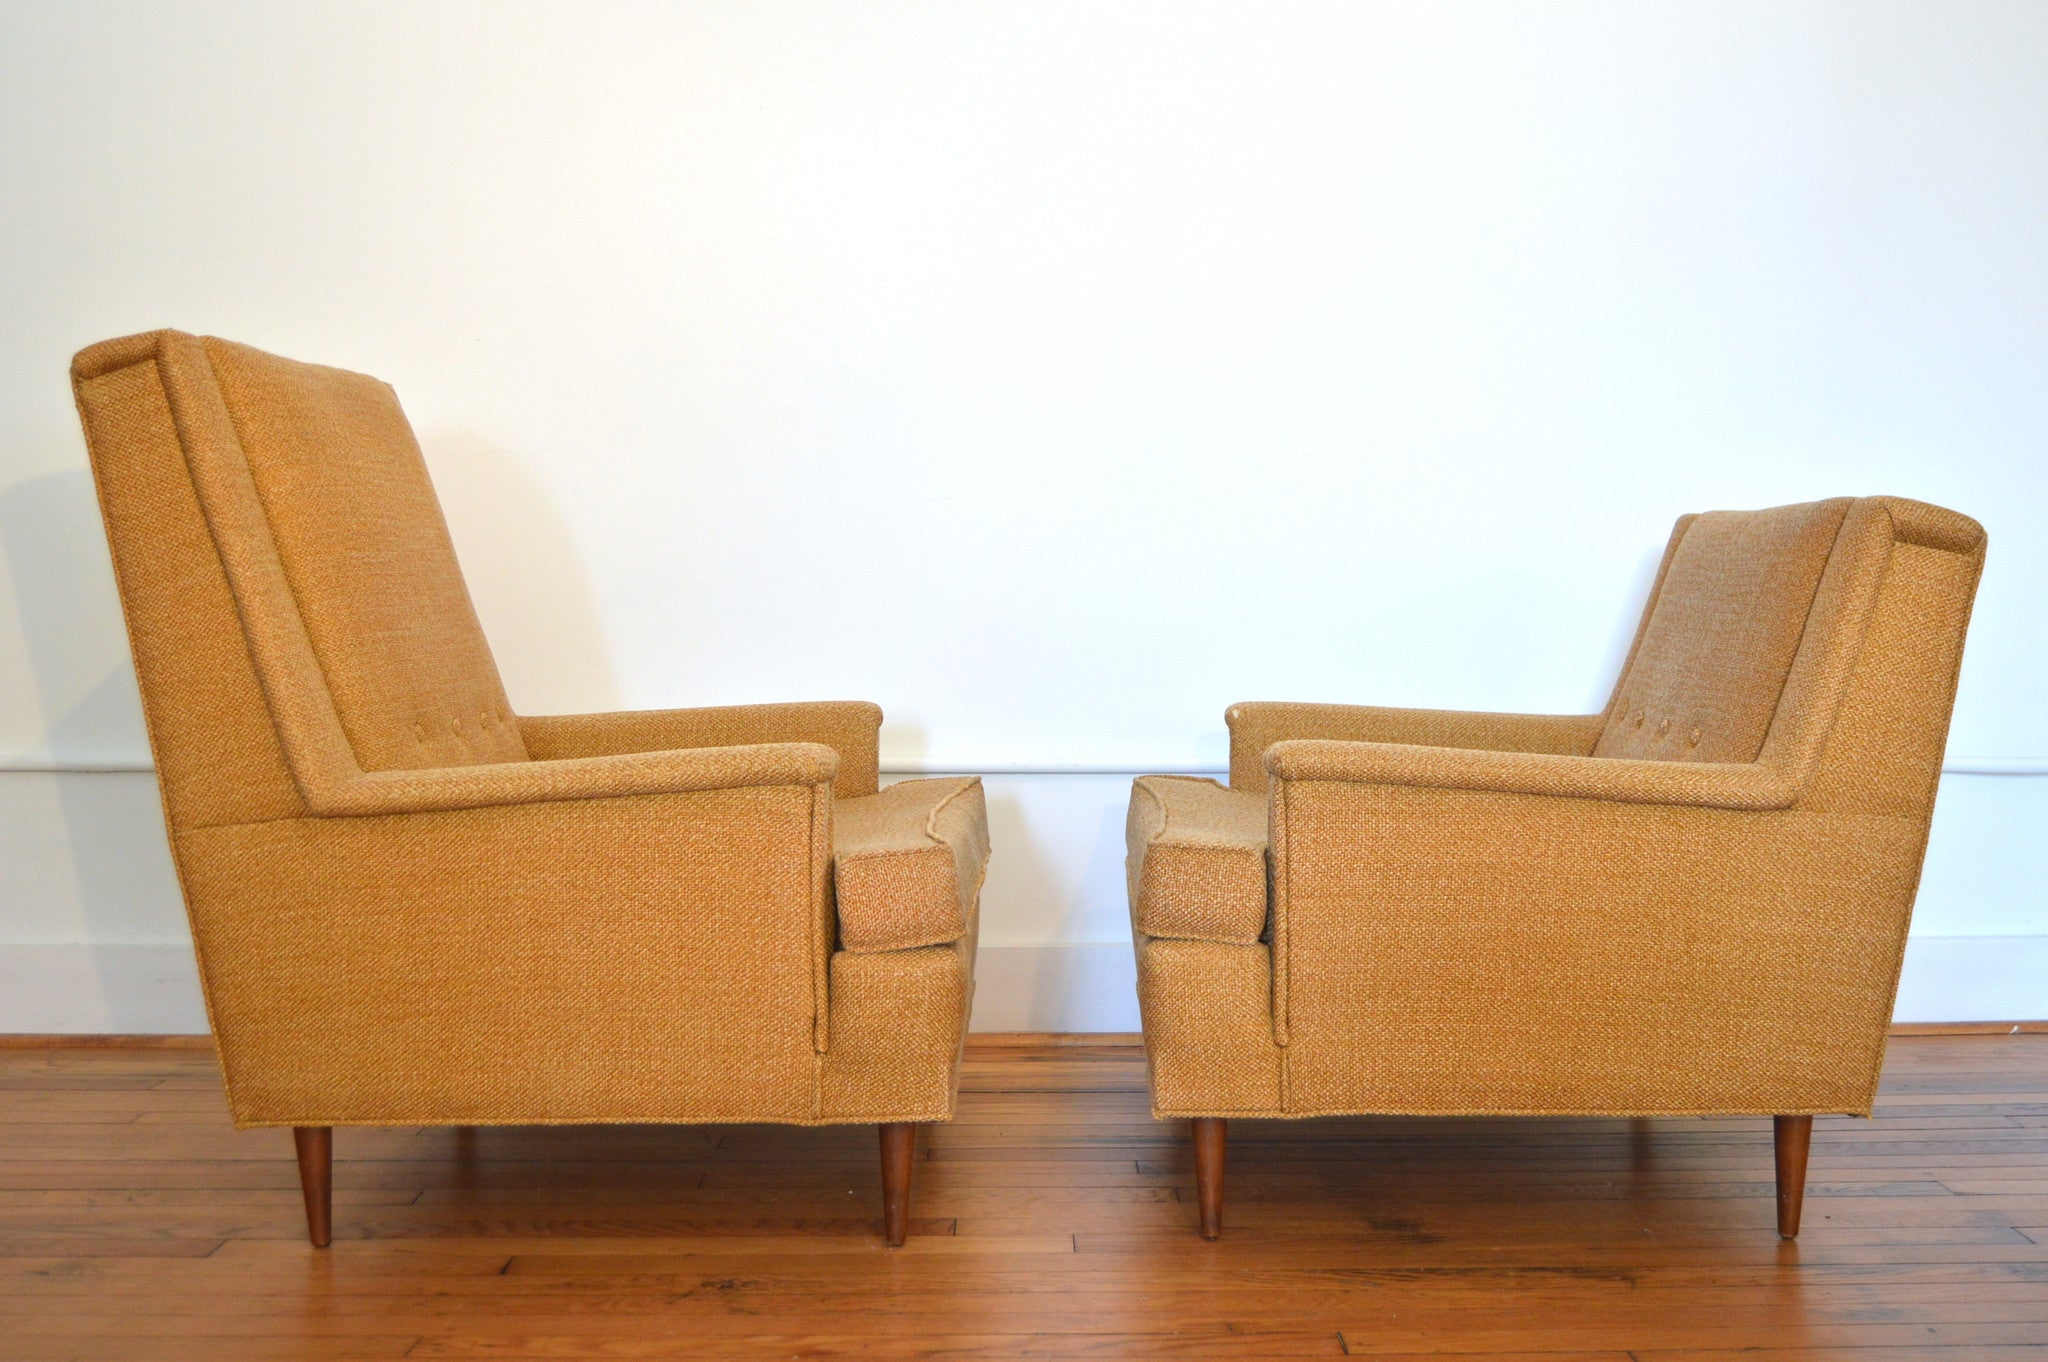 King and Queen Arm Chairs in the Style of Milo Baughman Danish